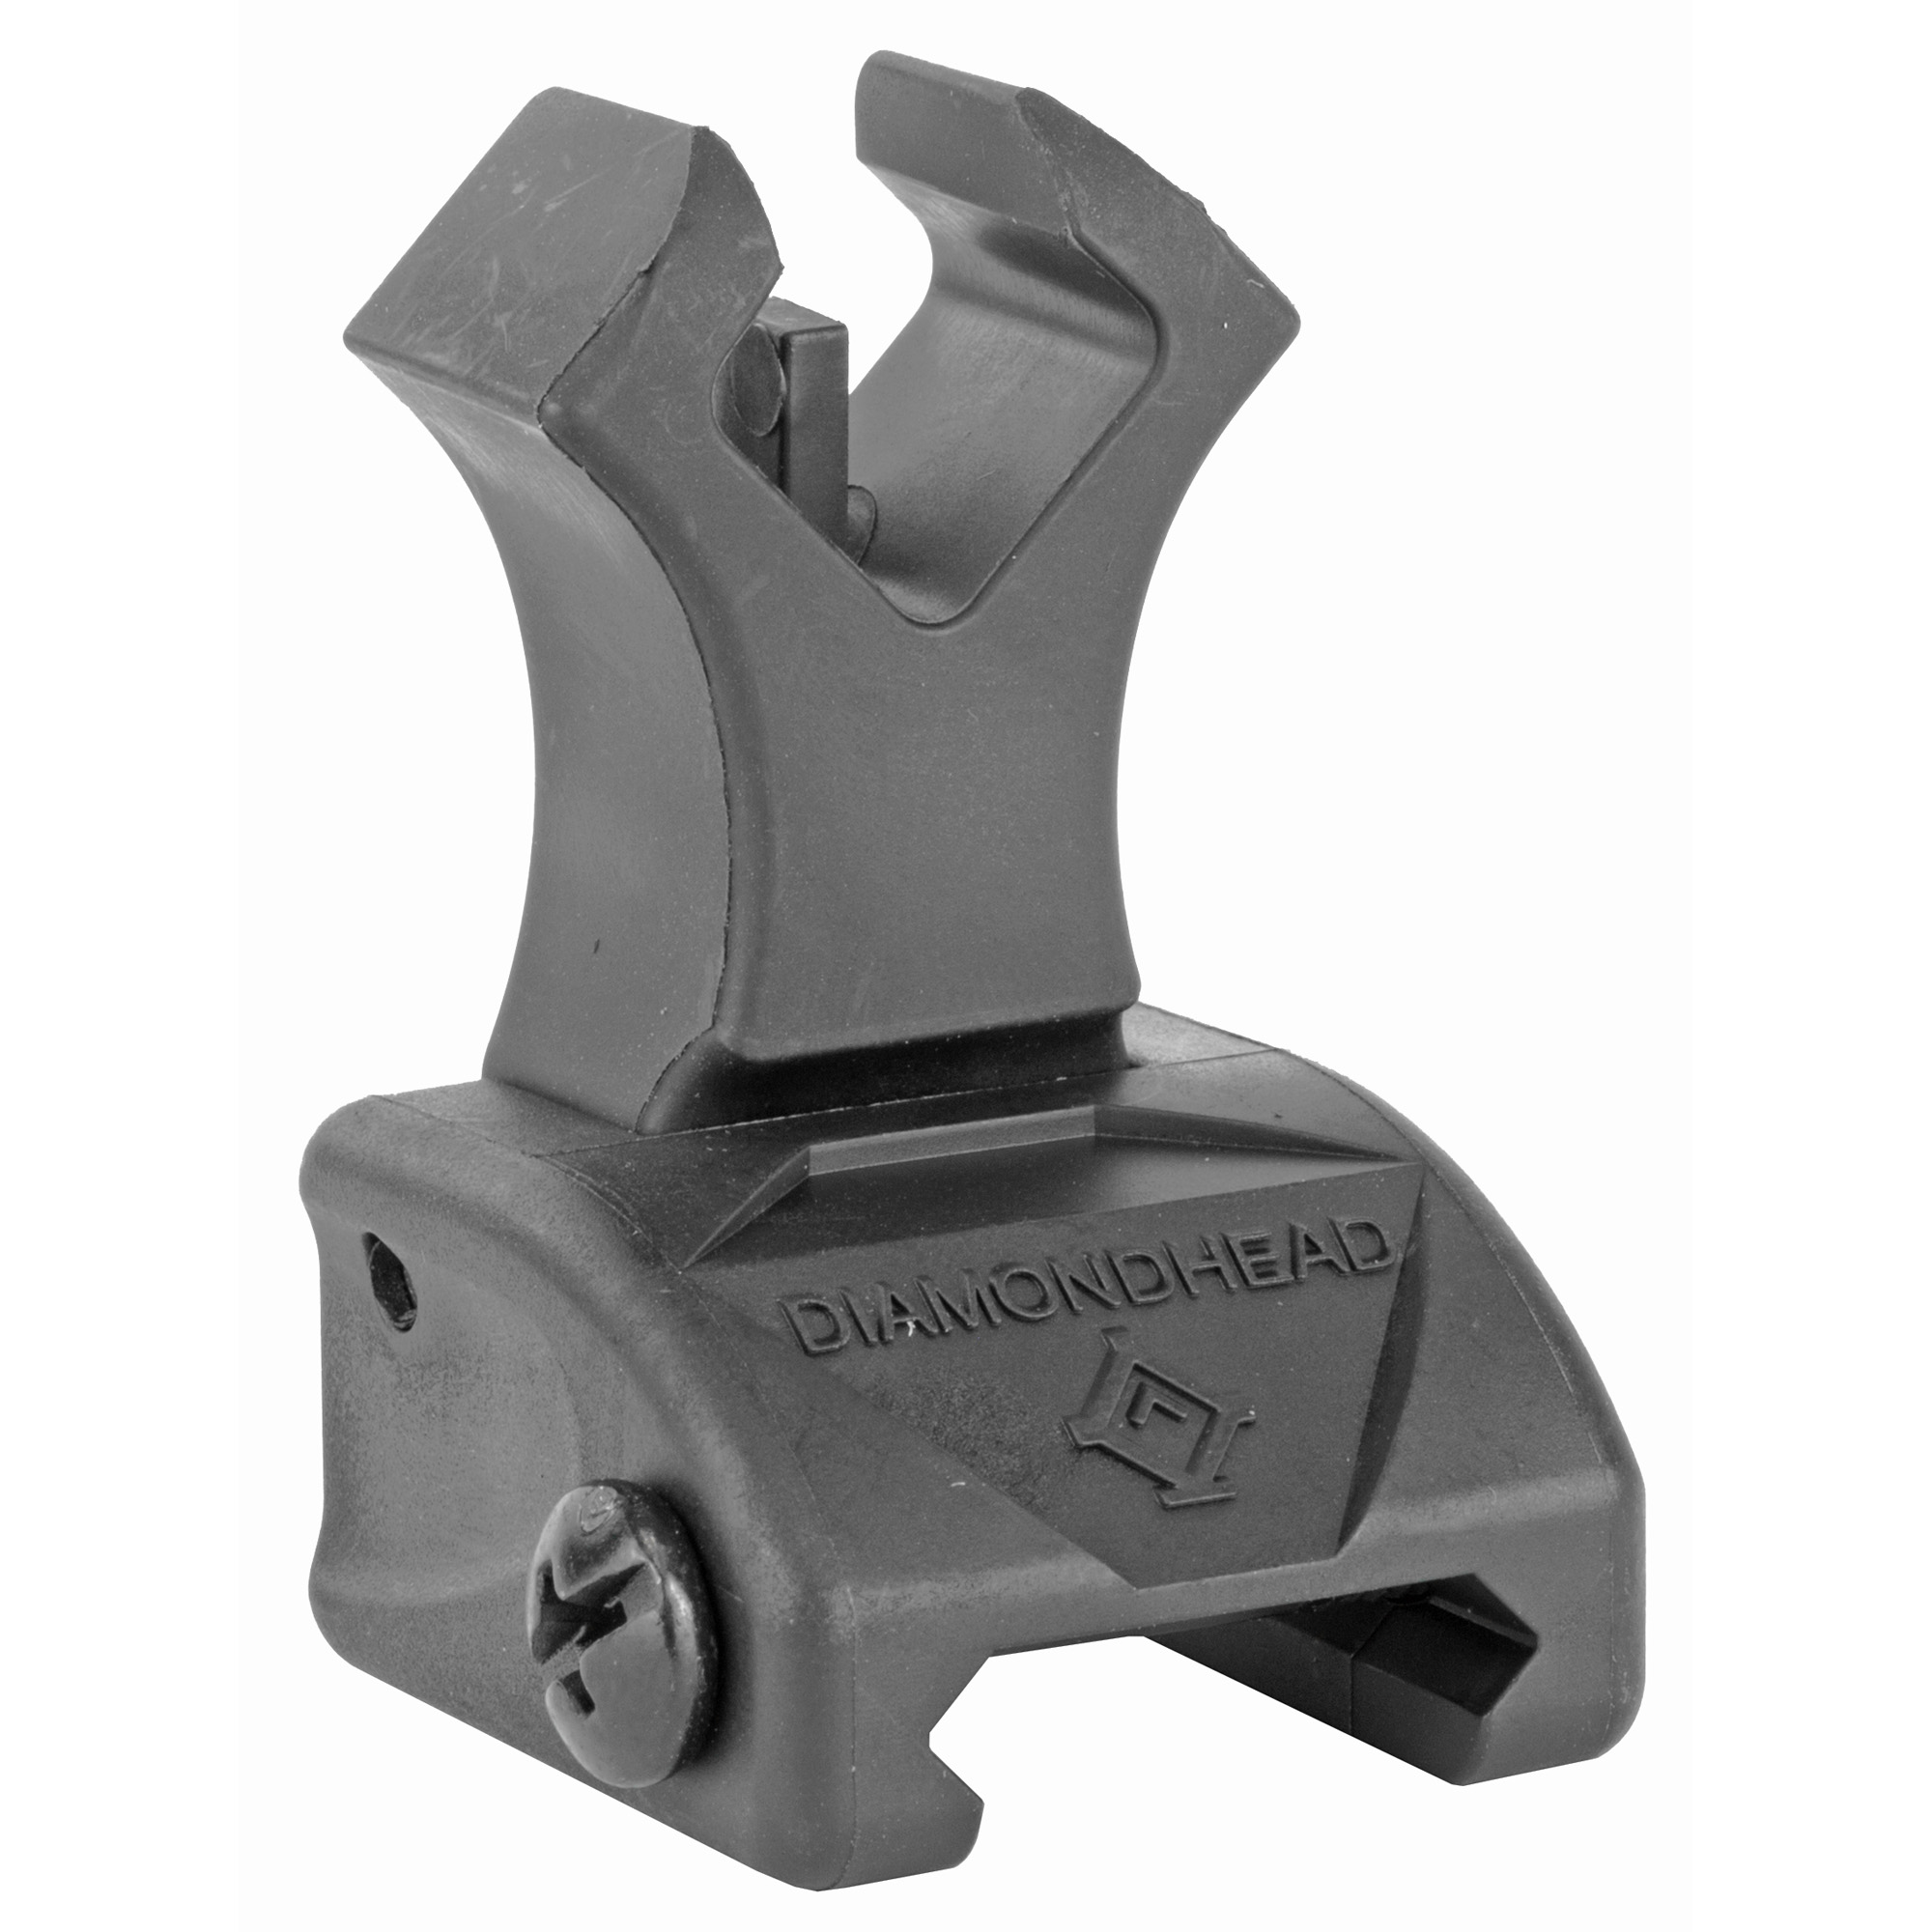 """Diamondhead's Polymer Diamond Front Sight is designed for all AR15's and Modern Sporting Rifles. When paired with the Polymer Diamond Rear Sight"""" it is suitable for firearms fitted with a Diamondhead VRS handguard or any M1913 Picatinny Rail System"""